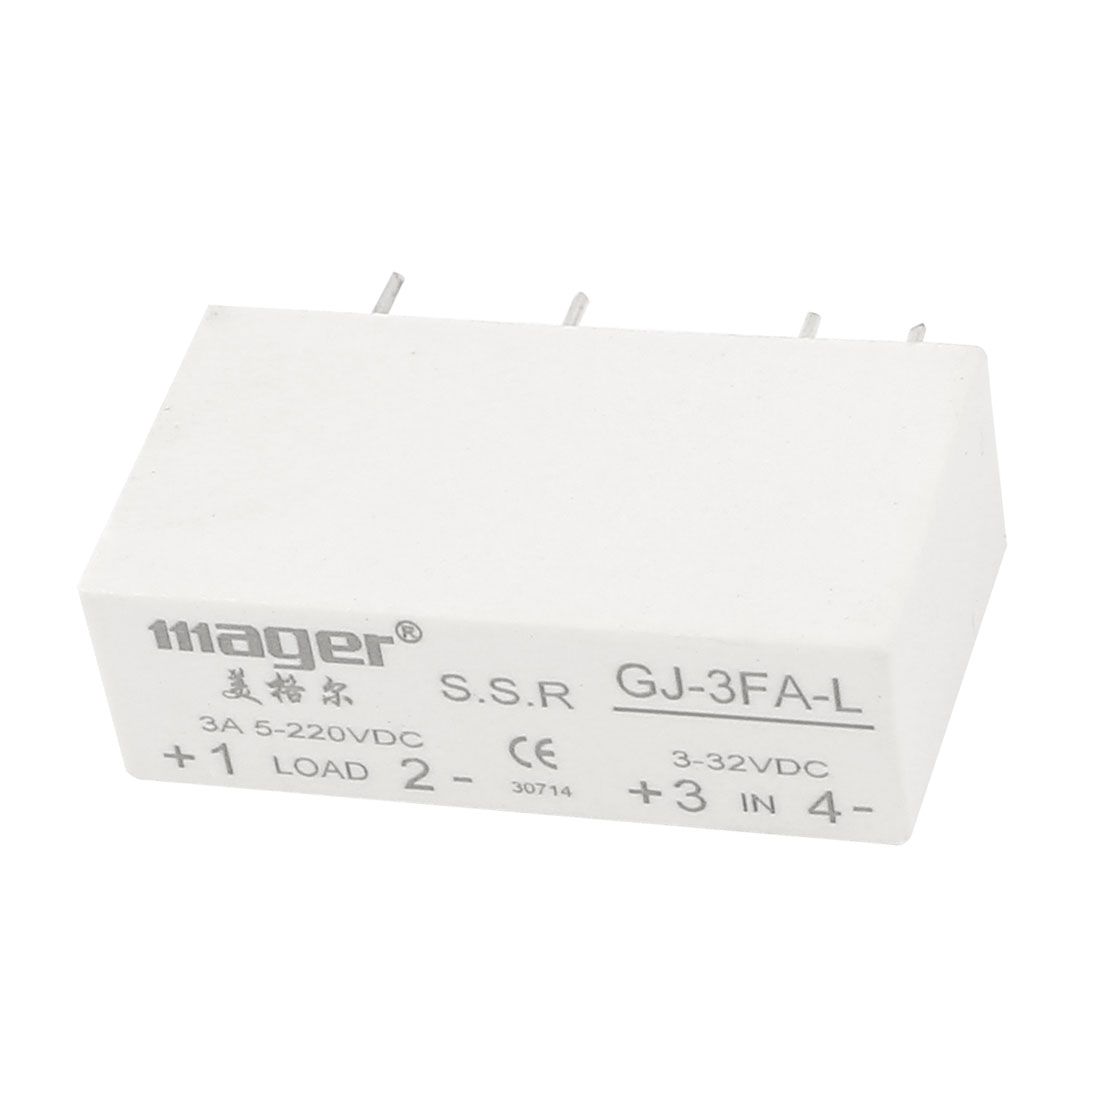 GJ-3FA-L DC3-32V to DC 5-220V 3A 4-Pin PCB Through Hole Rectangle Single Phase SSR Solid State Relay